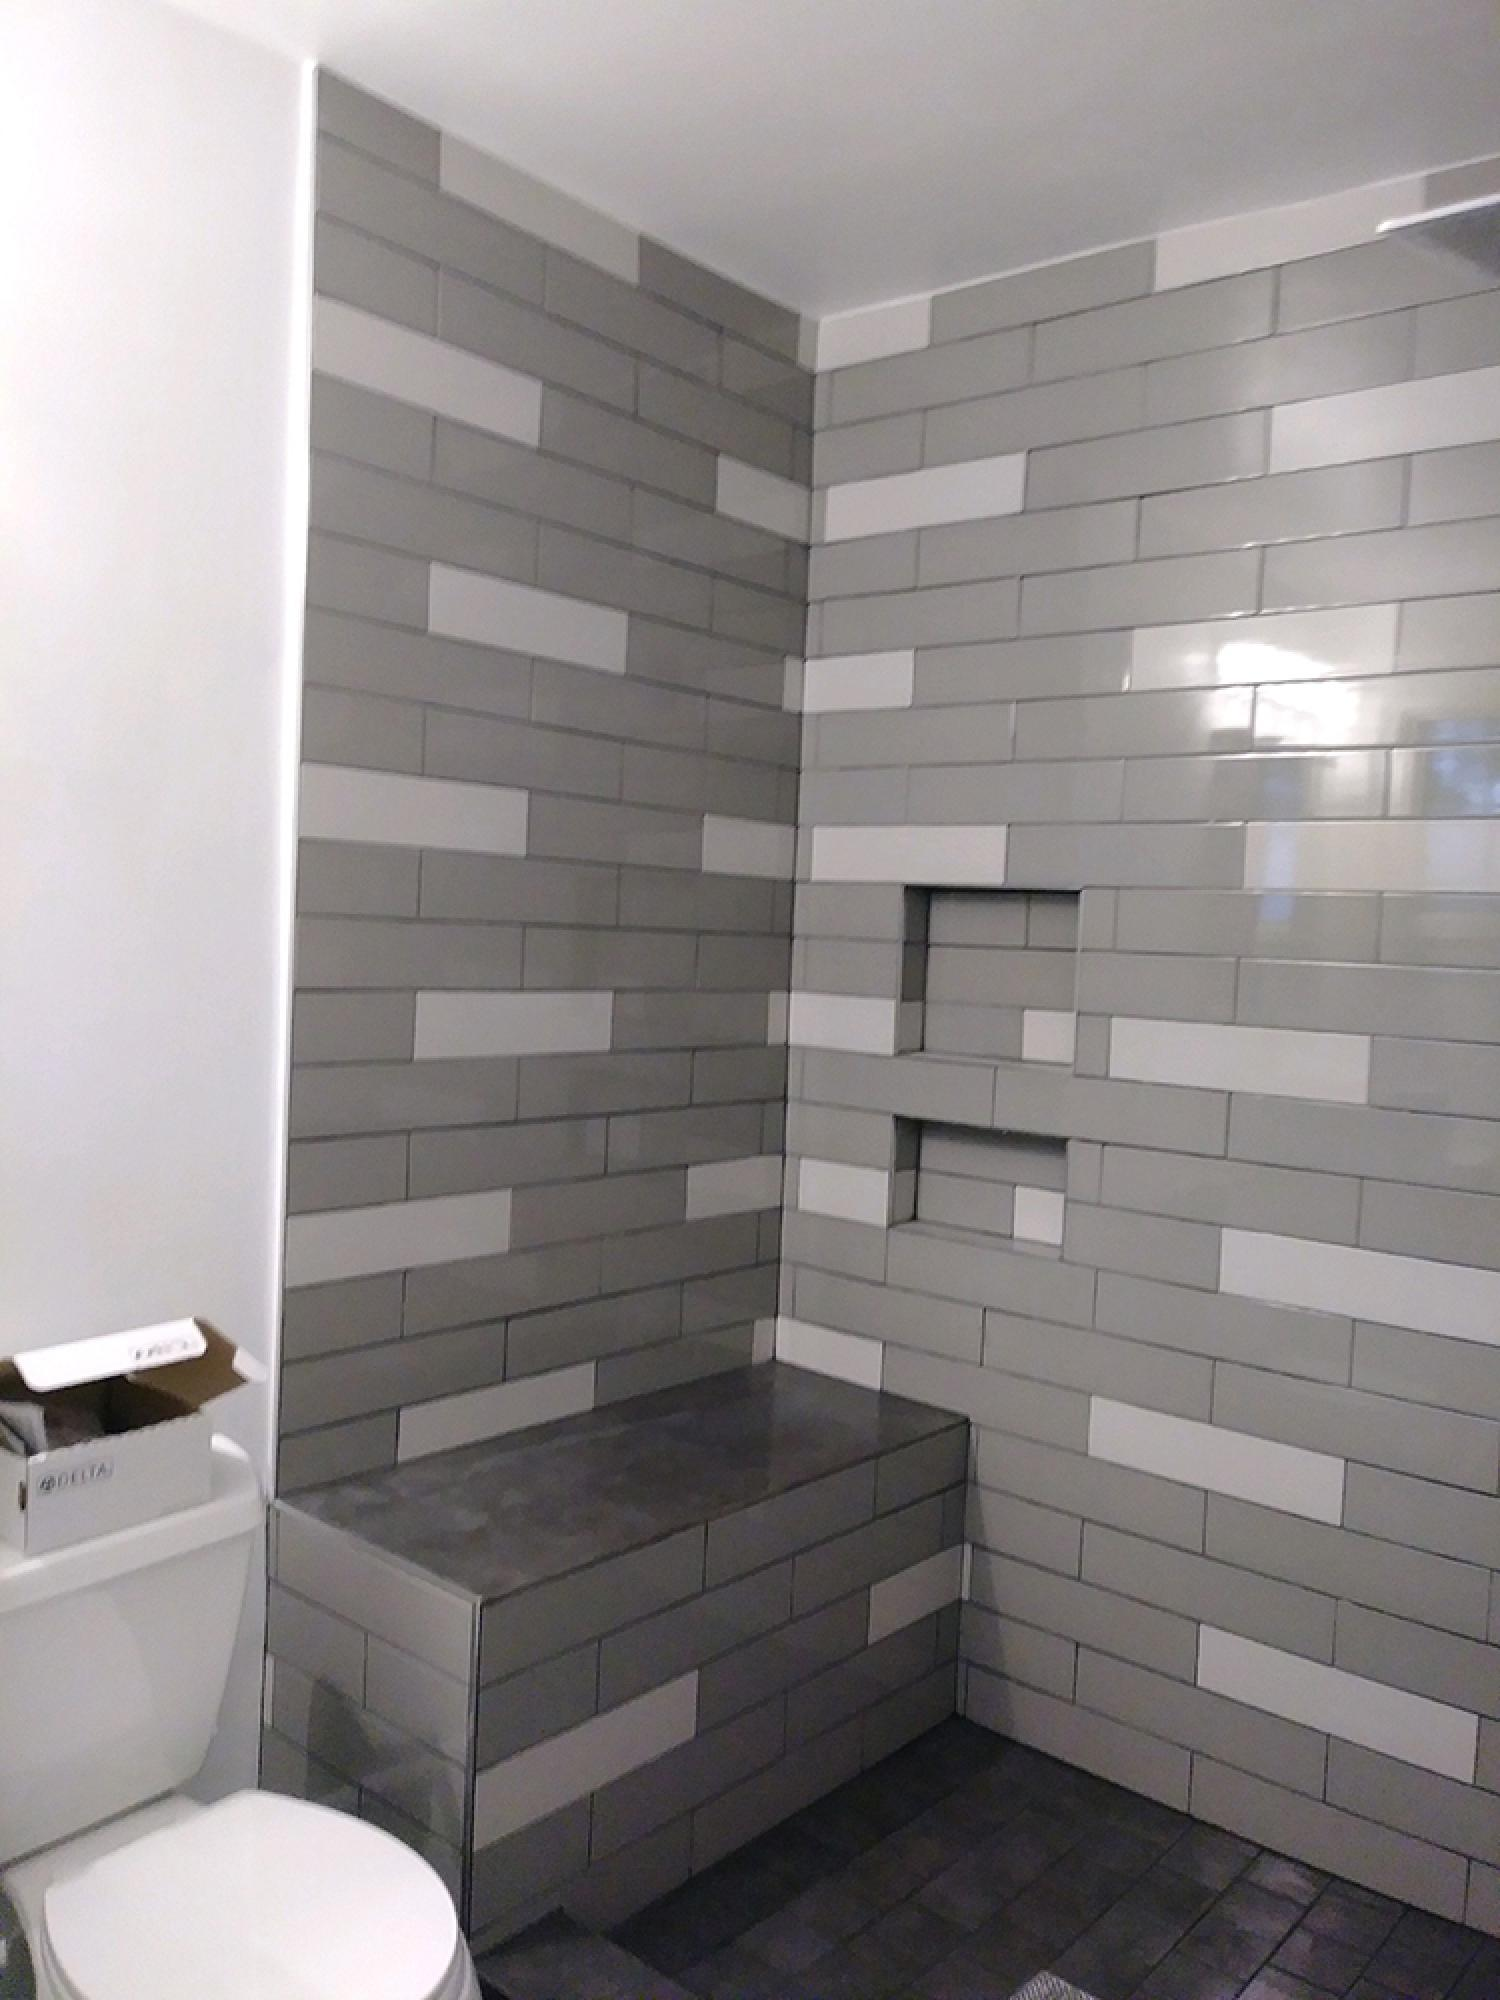 Enriques Bathroom Remodeling Thousand Oaks Camarillo Bathroom - Bathroom remodel thousand oaks